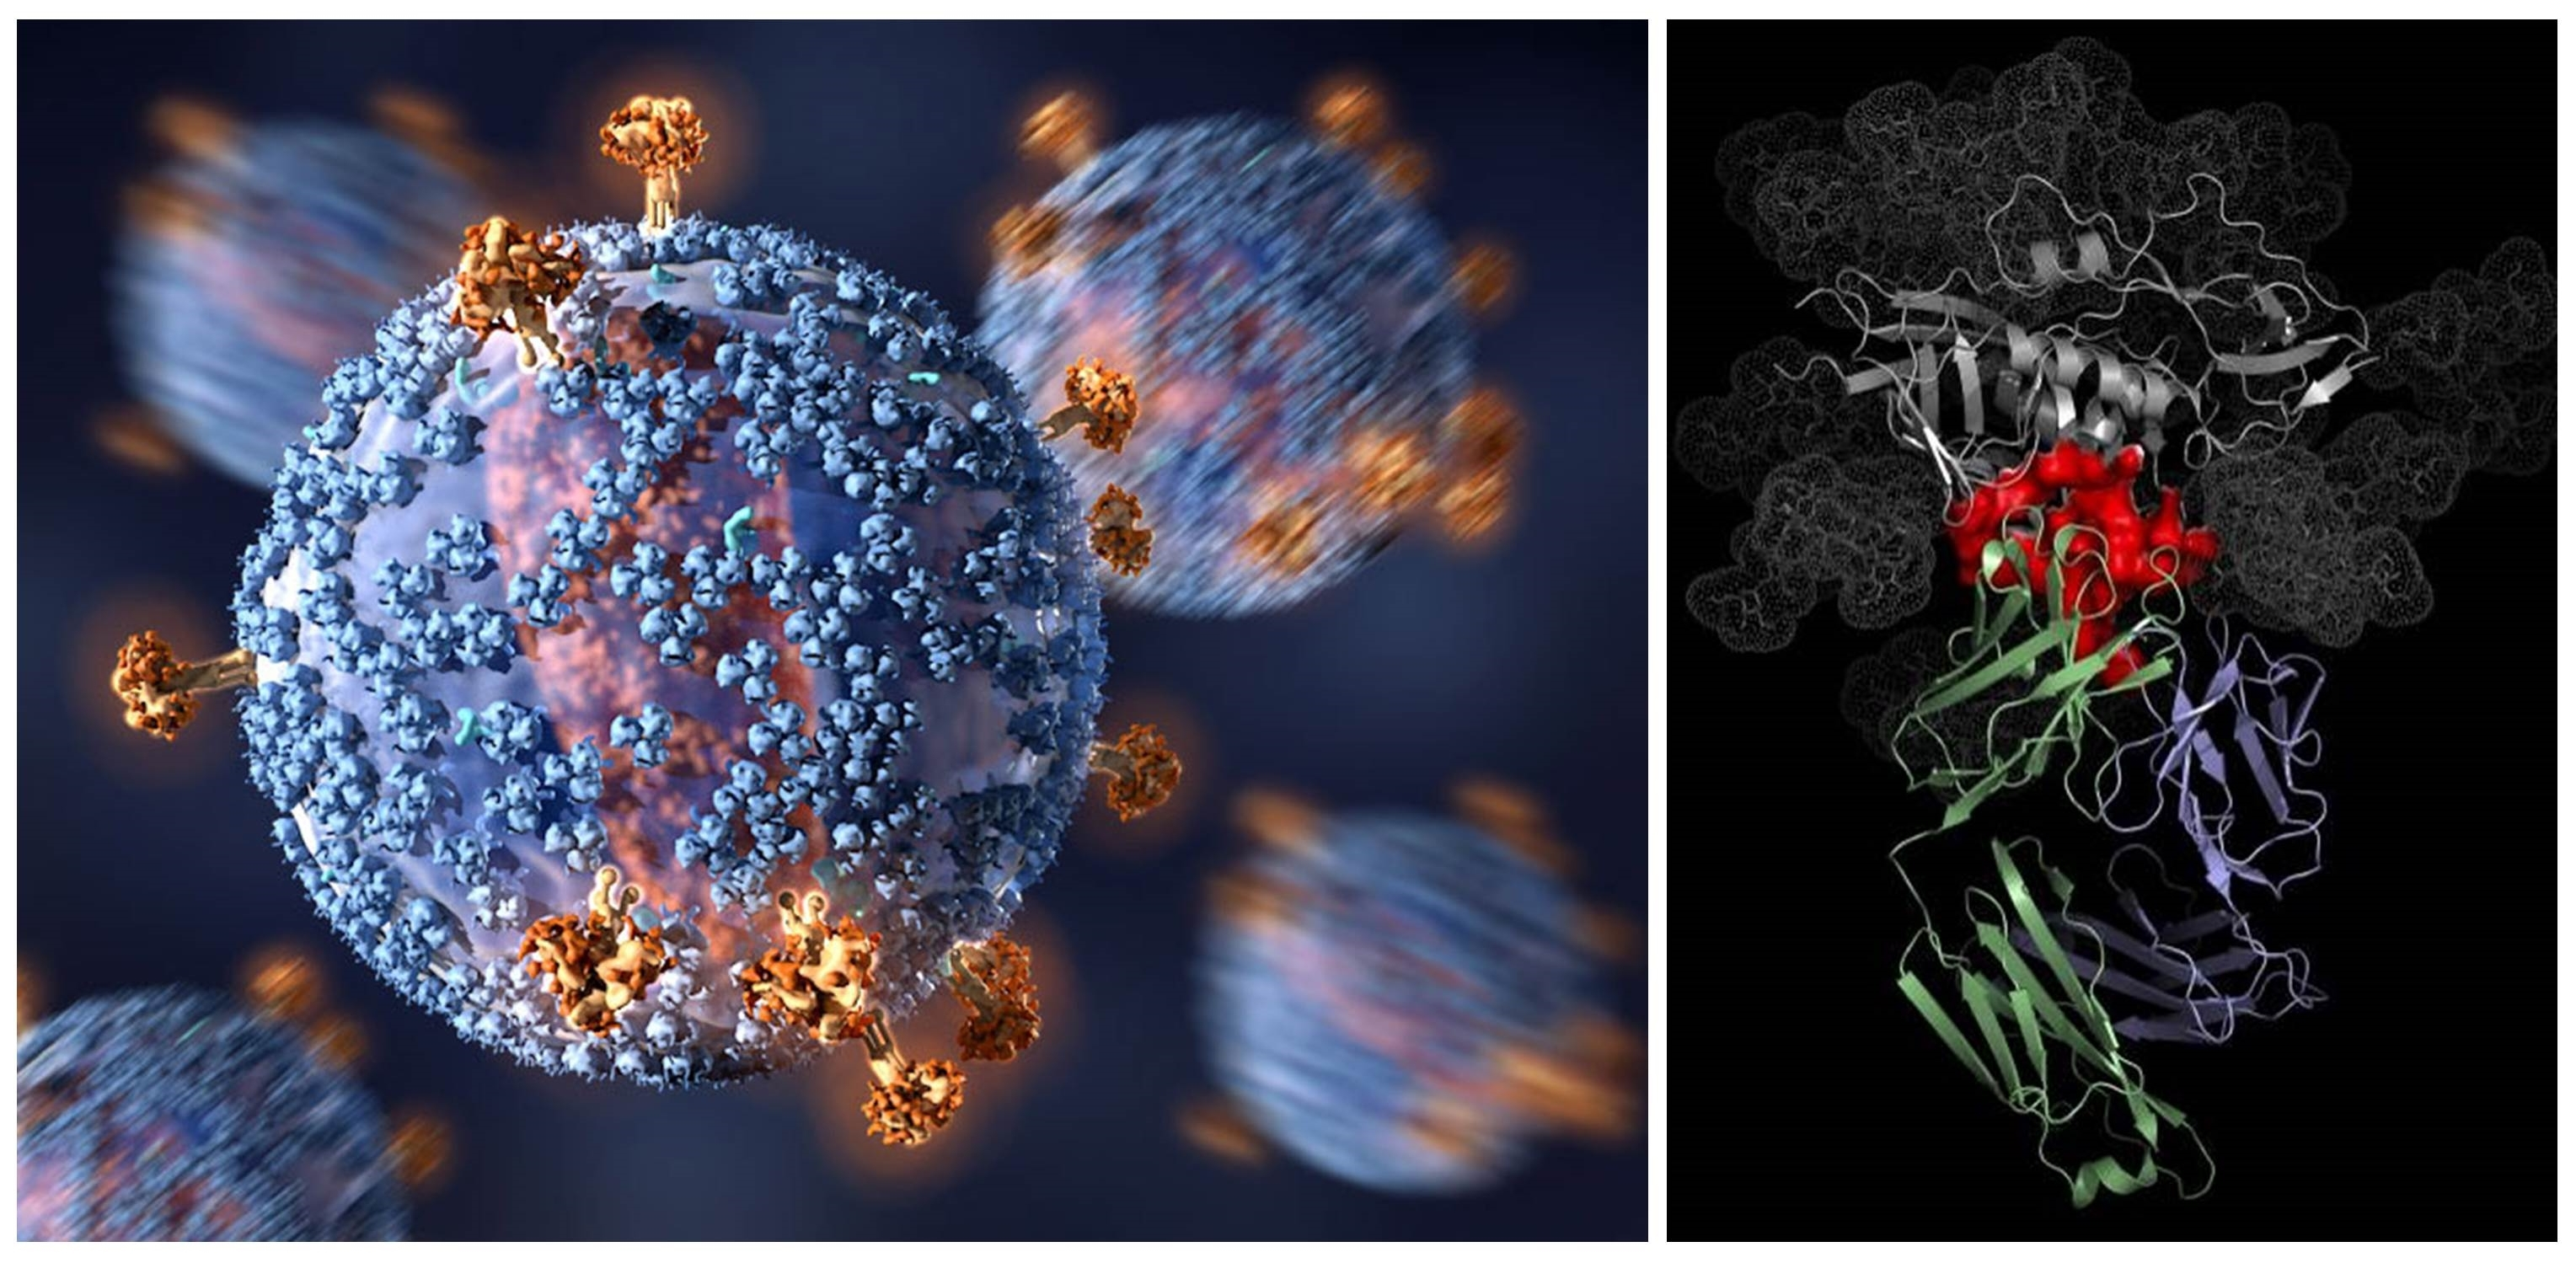 Virus and antibody bound to virus